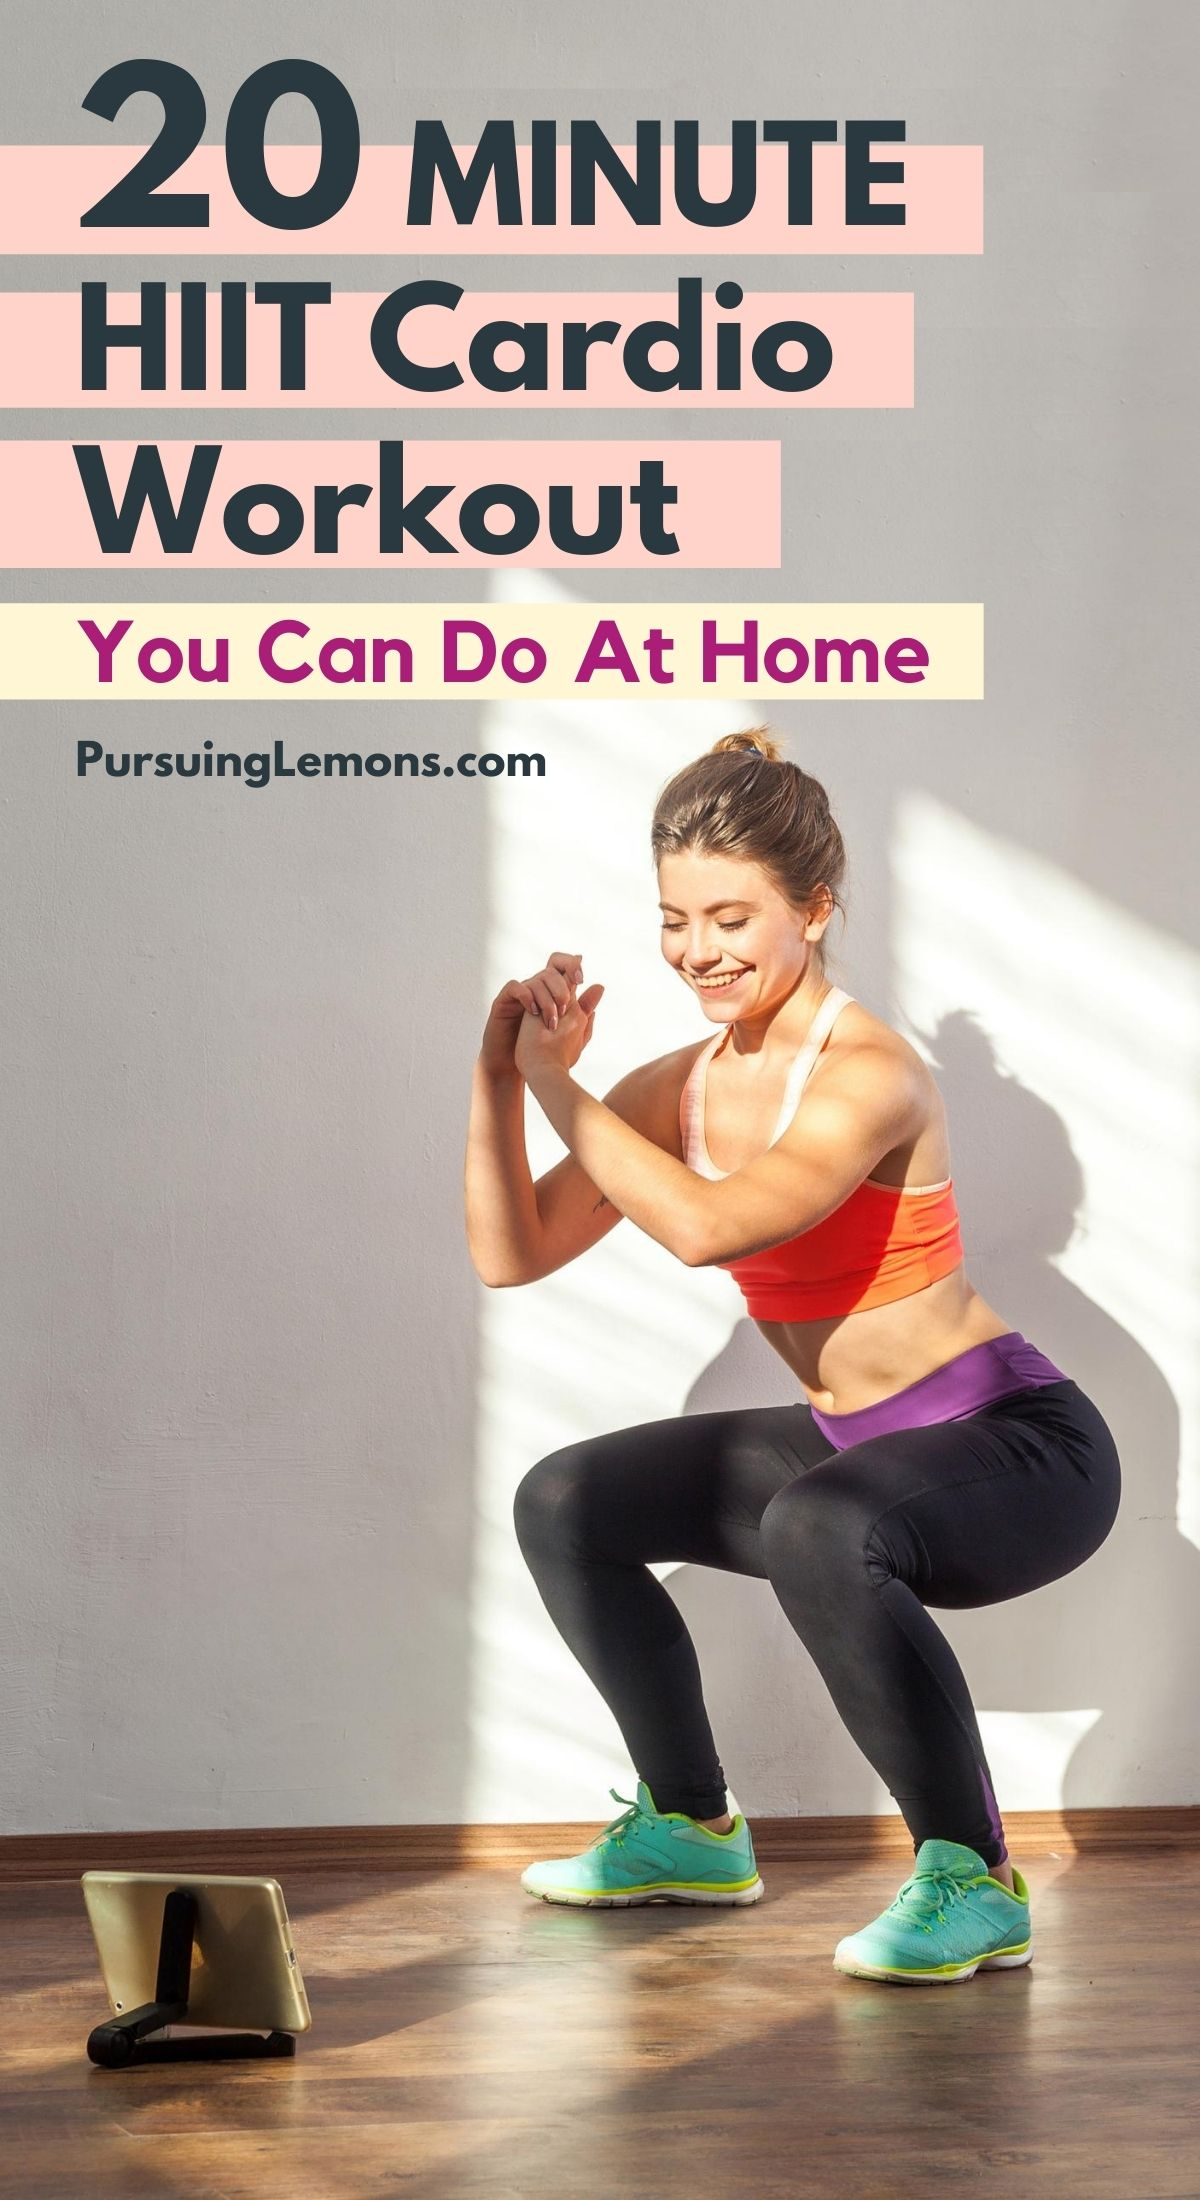 20-Minute HIIT Cardio Workout You Can Do At Home (No Equipment). If you have not tried a high-intensity interval training (HIIT) cardio workout, you're missing it out because HIIT promises the best workout to burn fat and lose weight in the least amount of time. #HIIT #workout #workoutathome #cardio